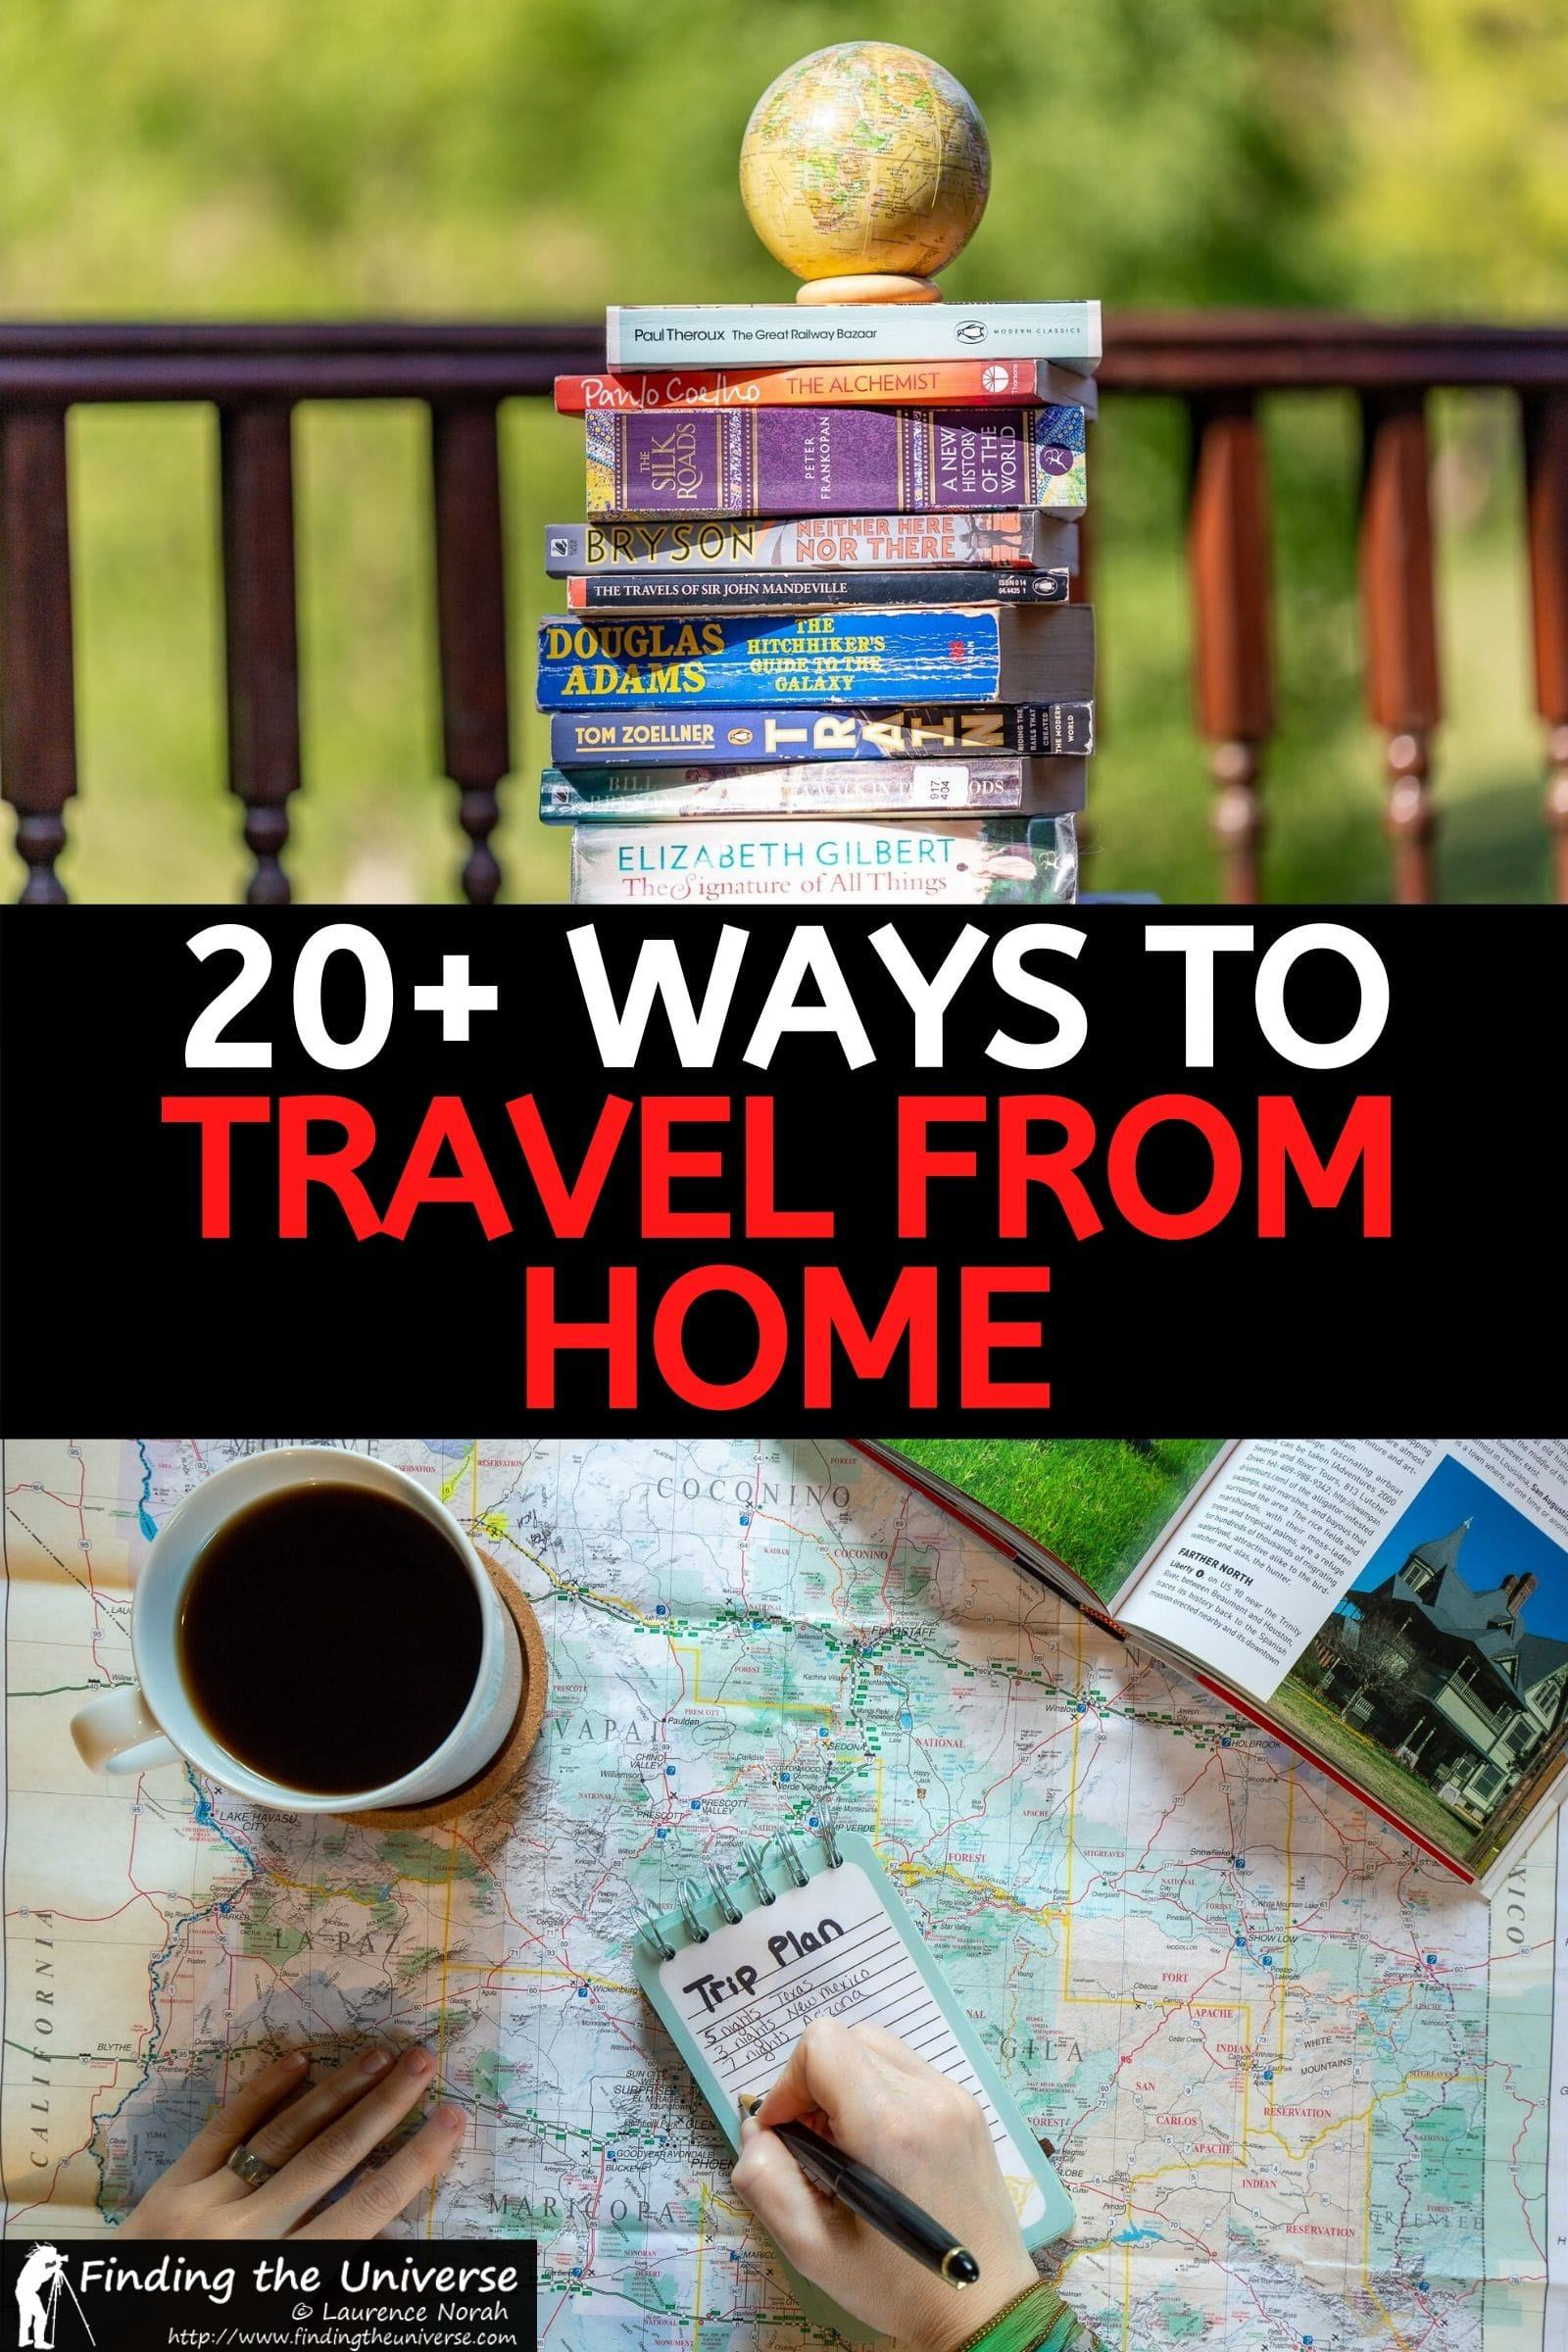 A host of ideas to help you travel from home! Everything from virtual tours to books, movies, travel planning tips, music, creative outlets and more!